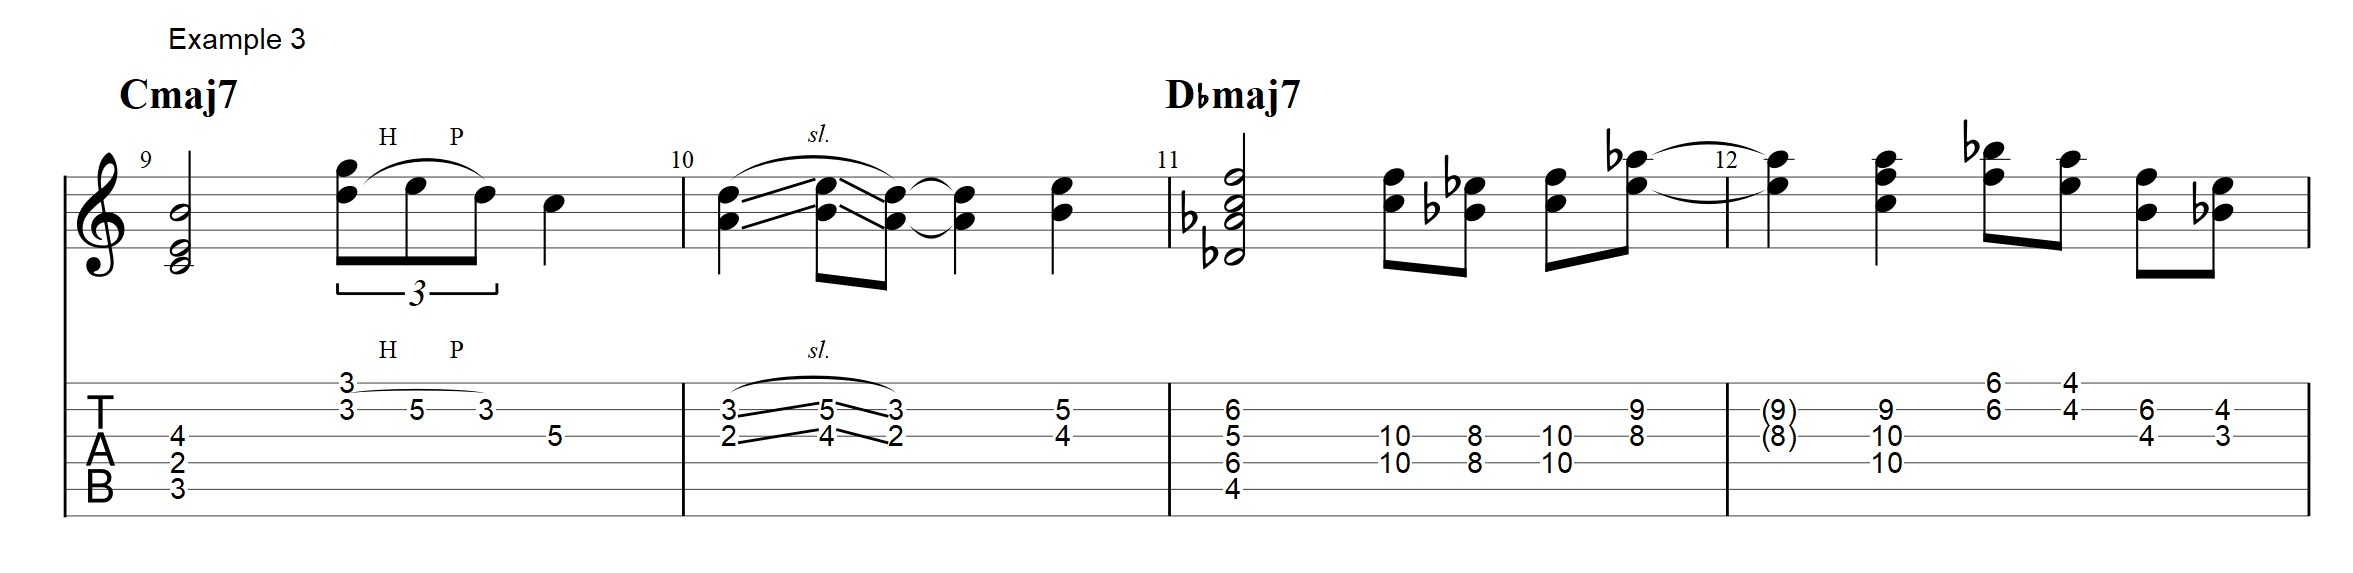 Jazz chords archives jens larsen the fills do convey the sound of the chord but does not yield a complete chord sound all the time buycottarizona Image collections